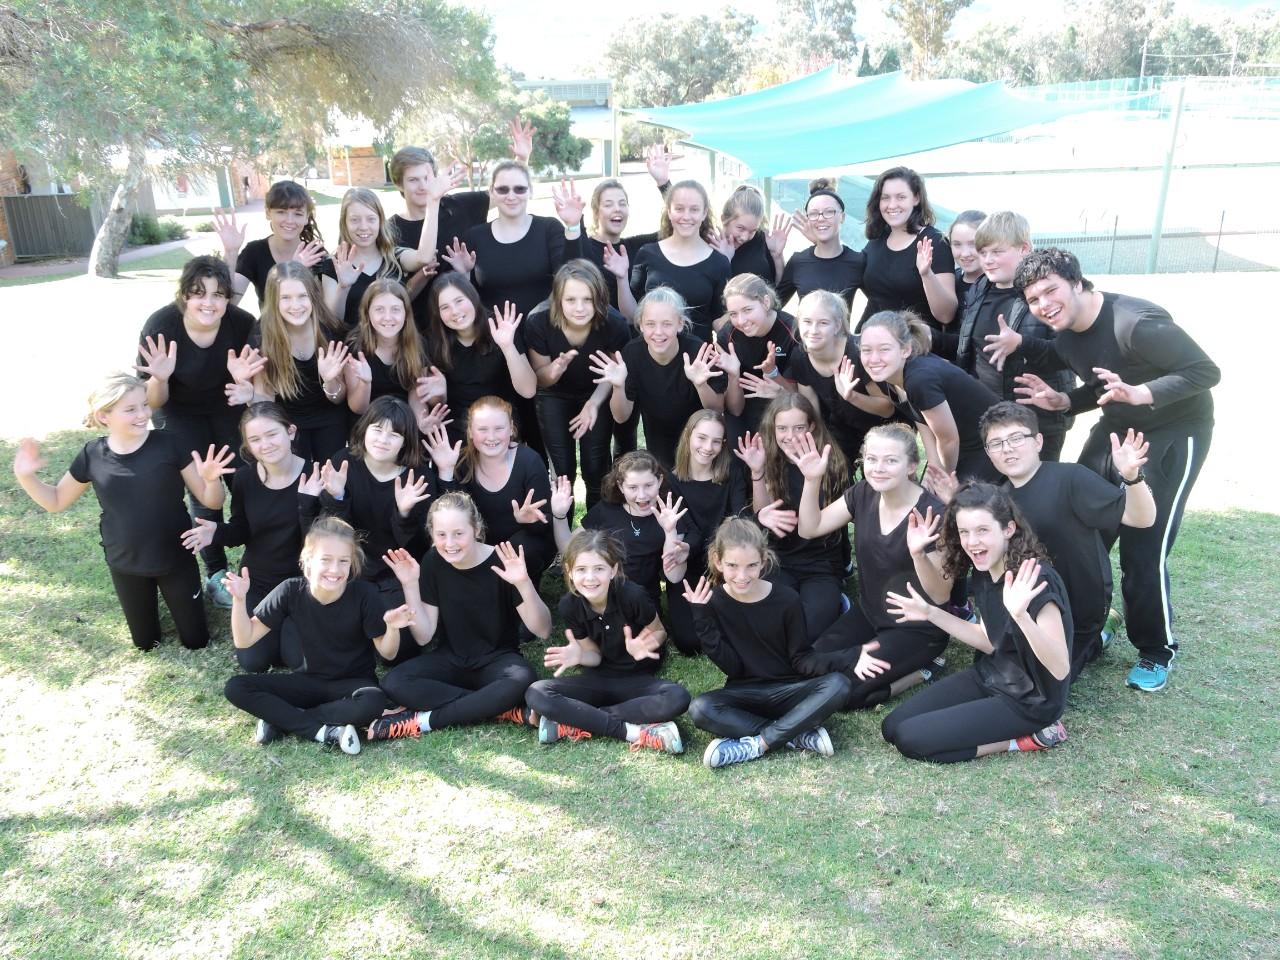 large group of drama students in black camp tshirts